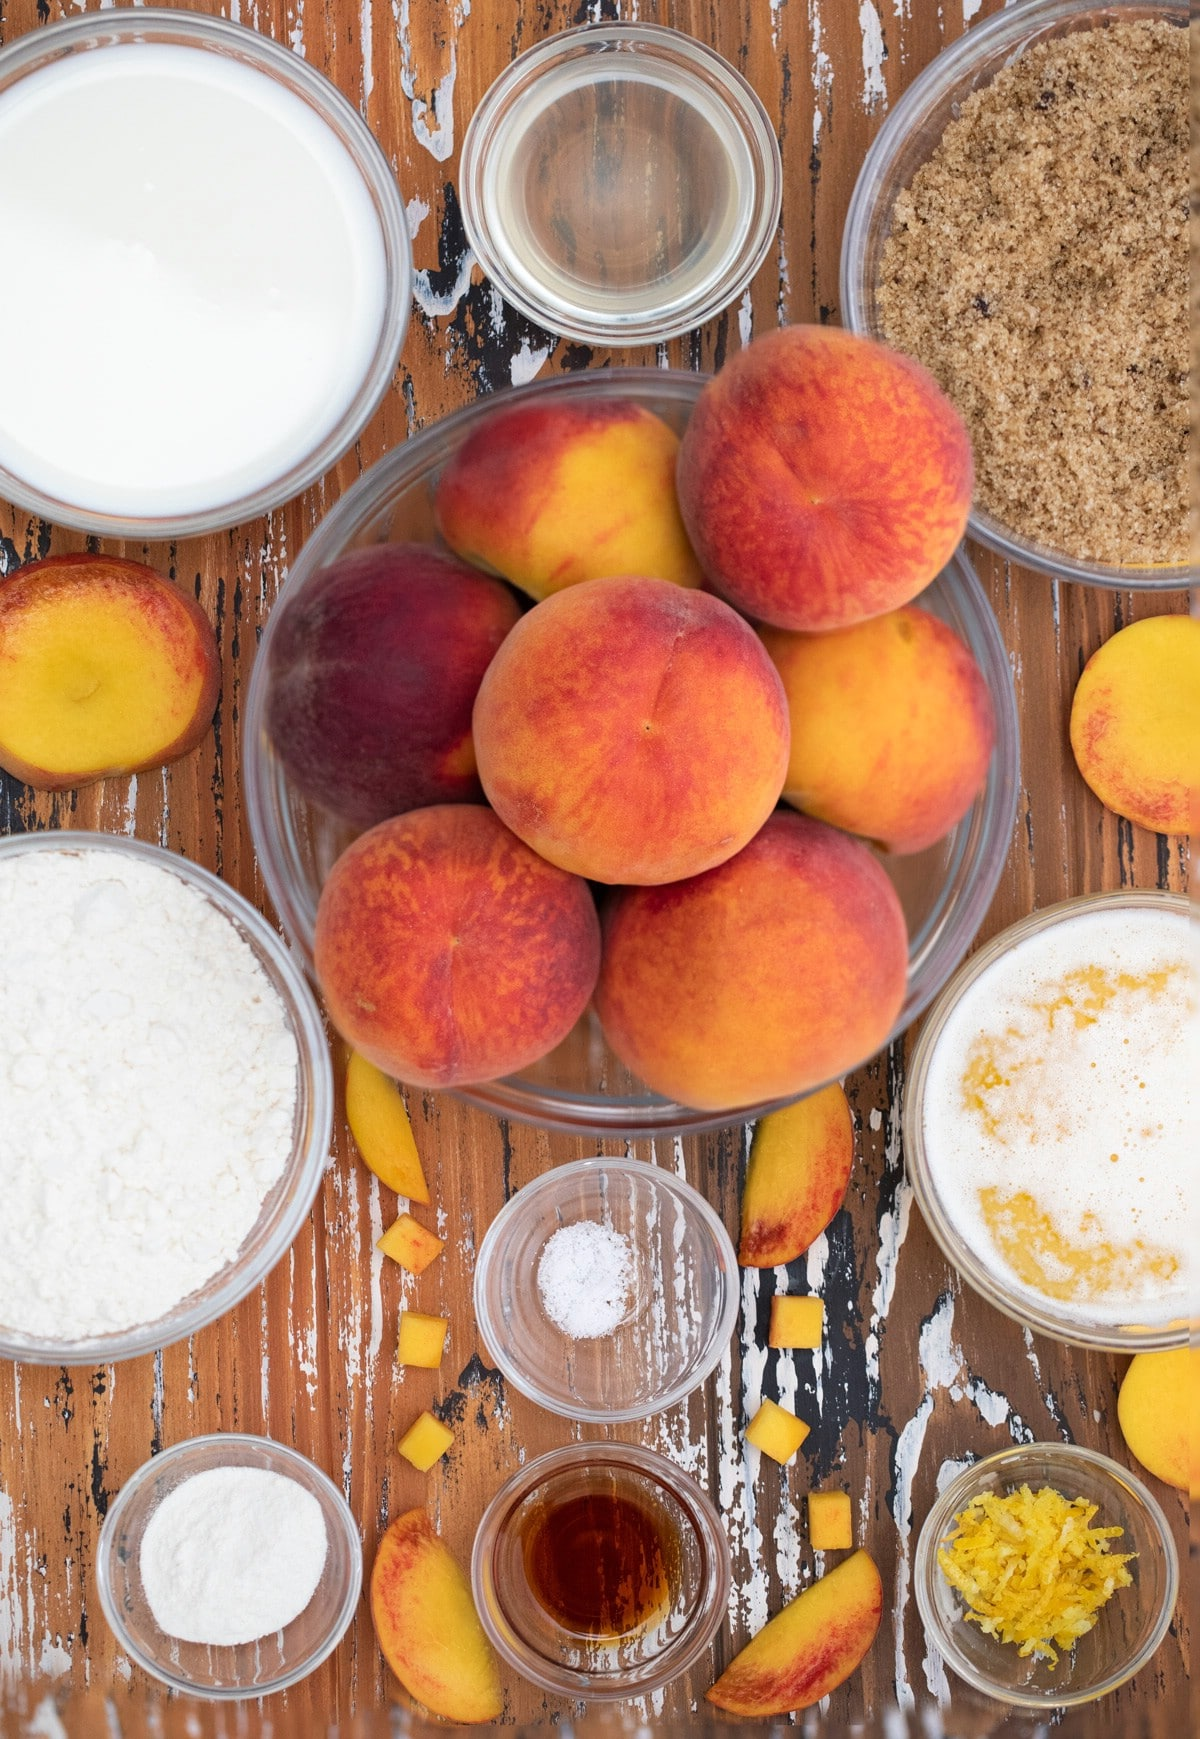 Ingredients in glass bowls for peach cobbler sitting on table